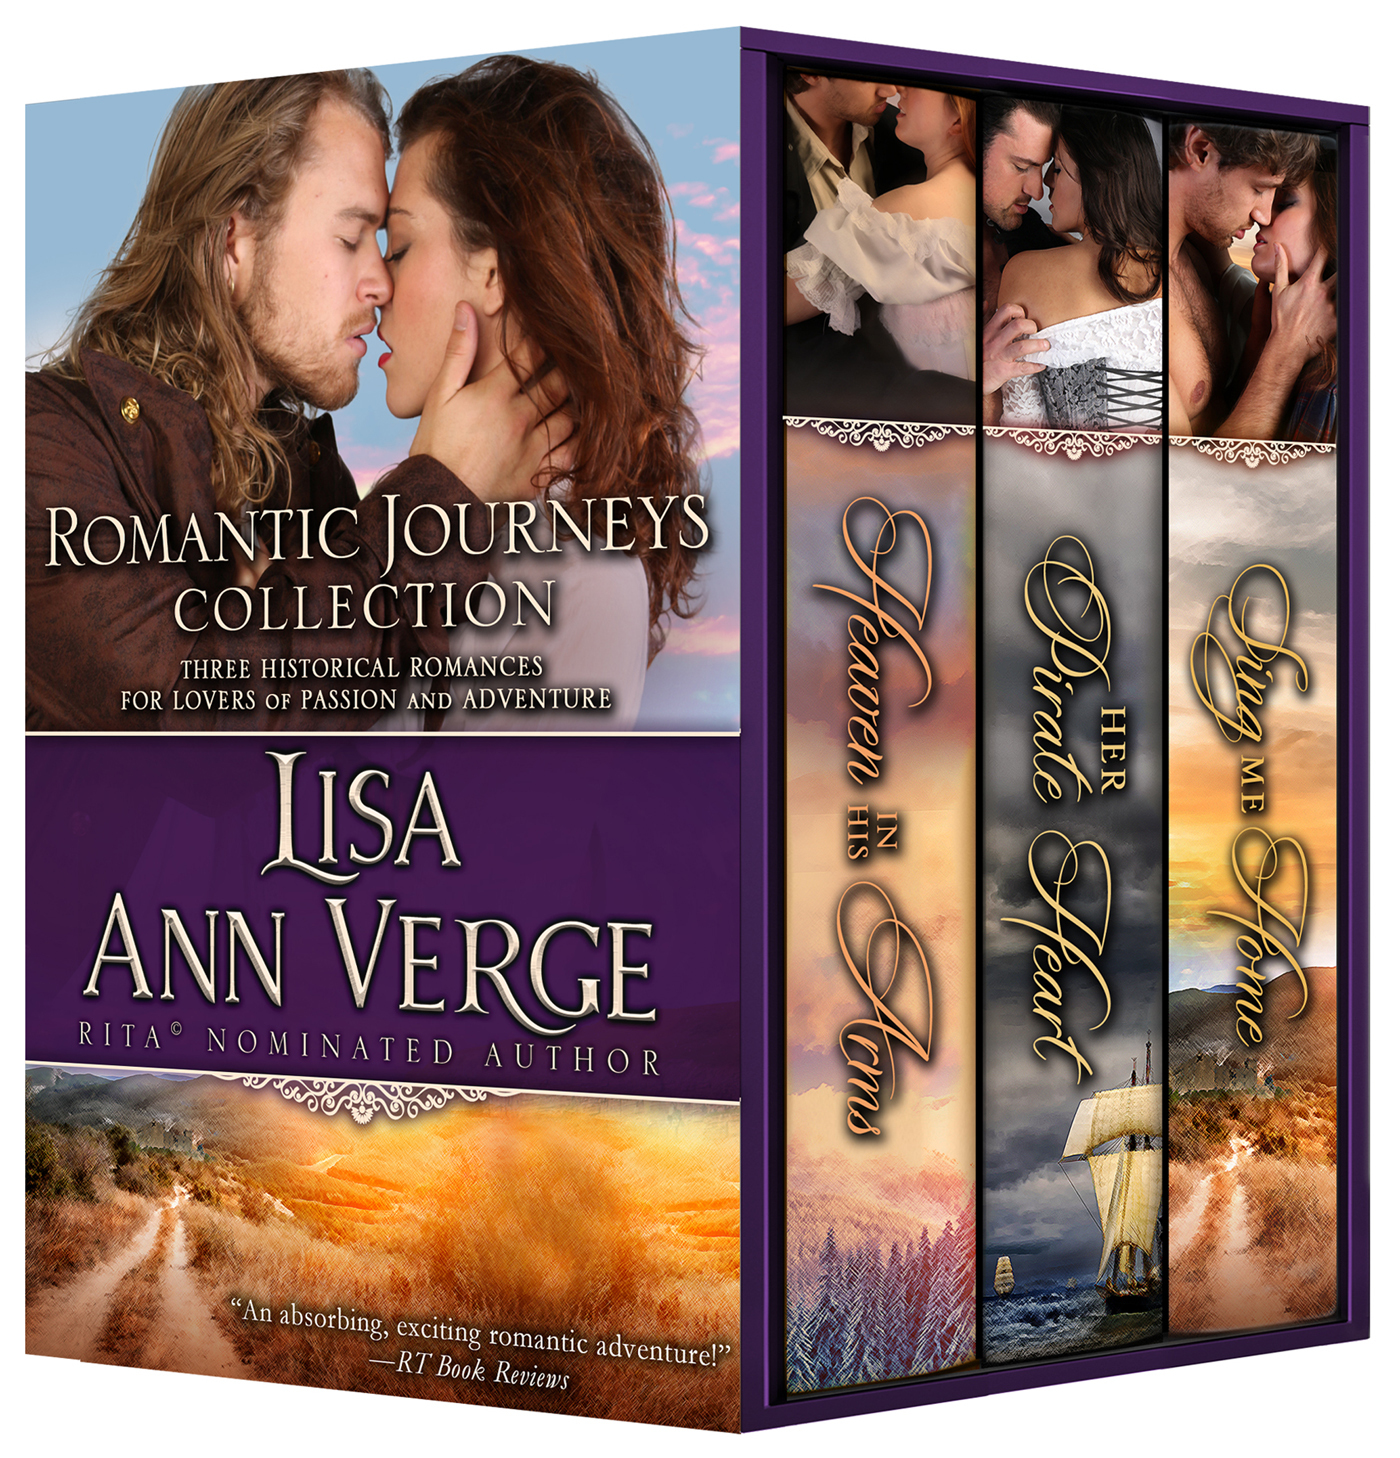 Romantic Journeys Collection: 3 Sweeping Historical Romances for Lovers of Passion and Adventure Lisa Ann Verge